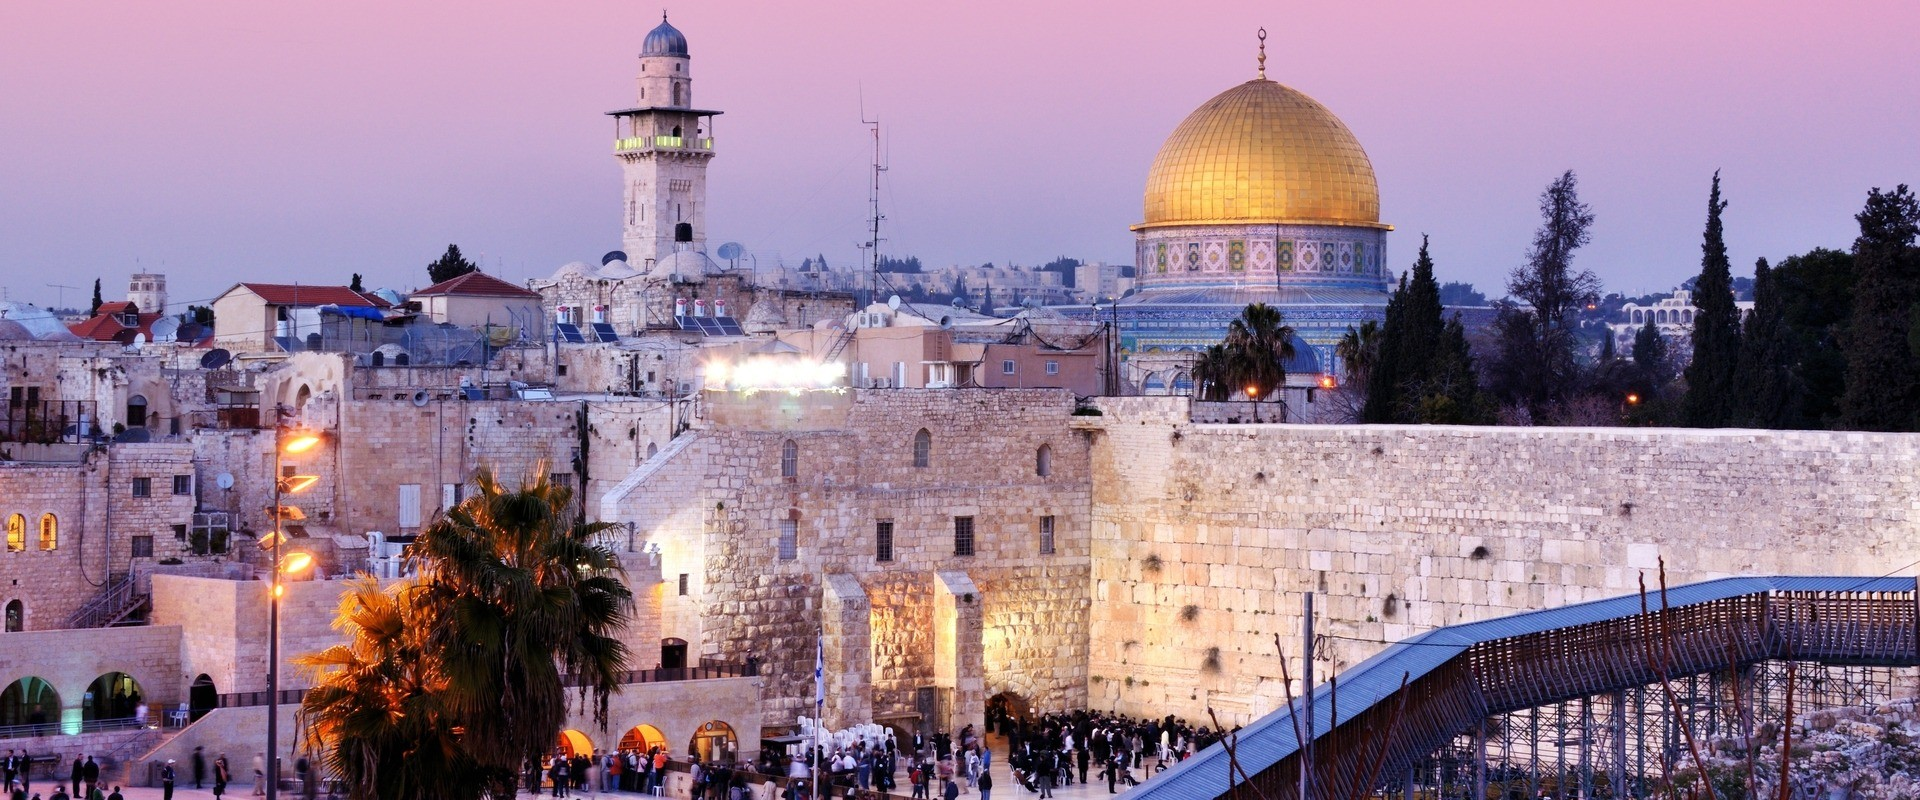 Christian Private Tour Guide Israel | Christian Private Tour Guide in Israel